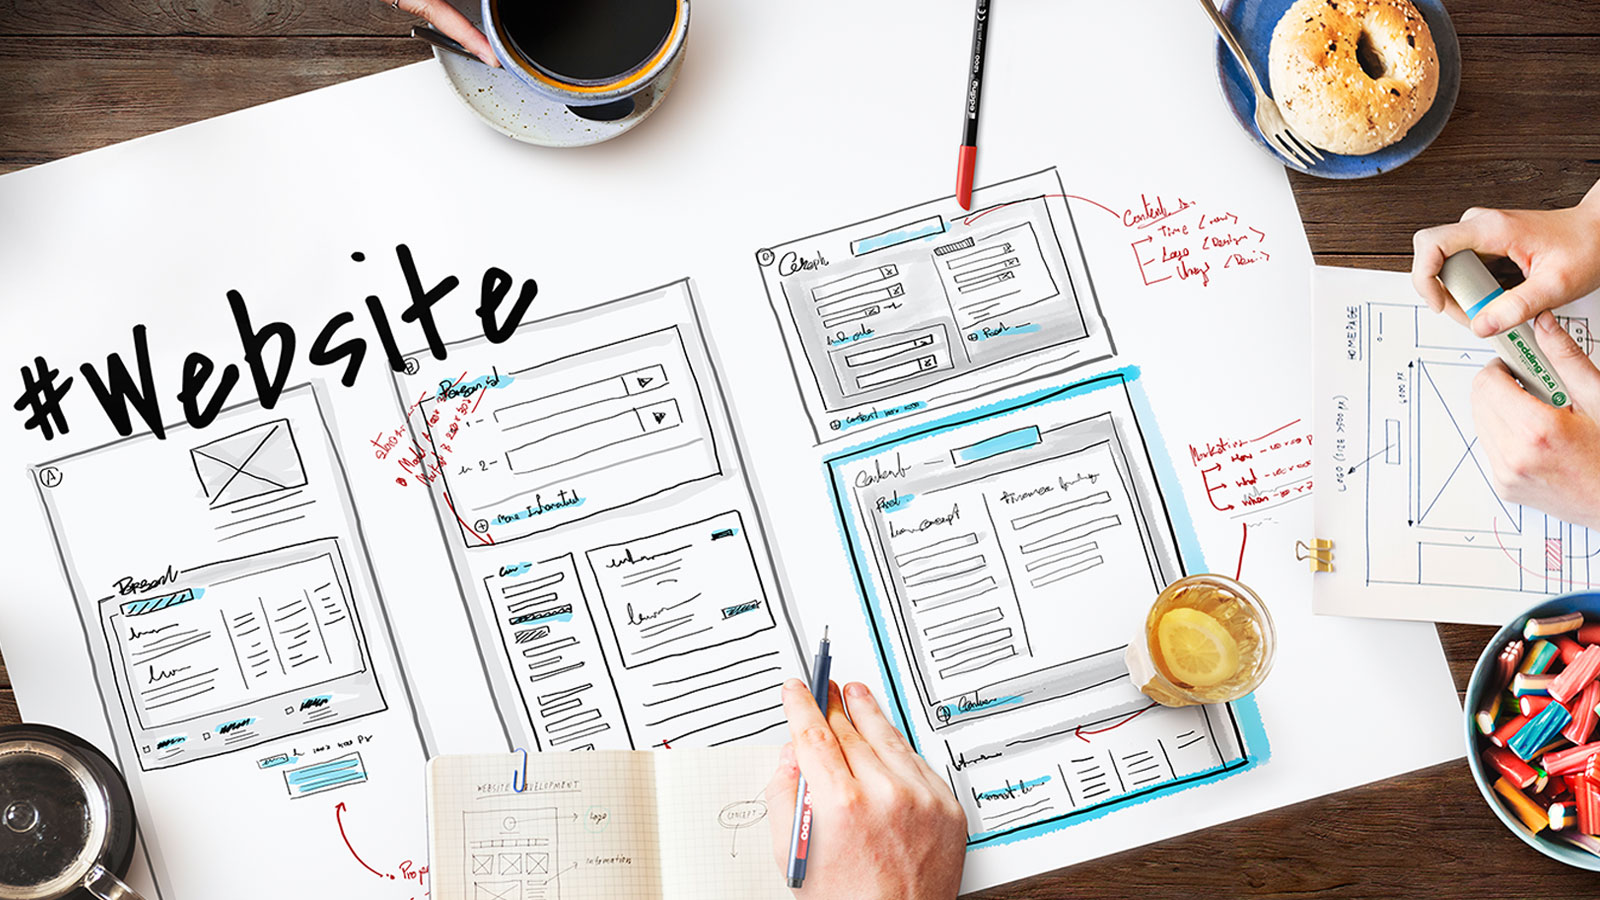 Website wireframes being drawn on paper